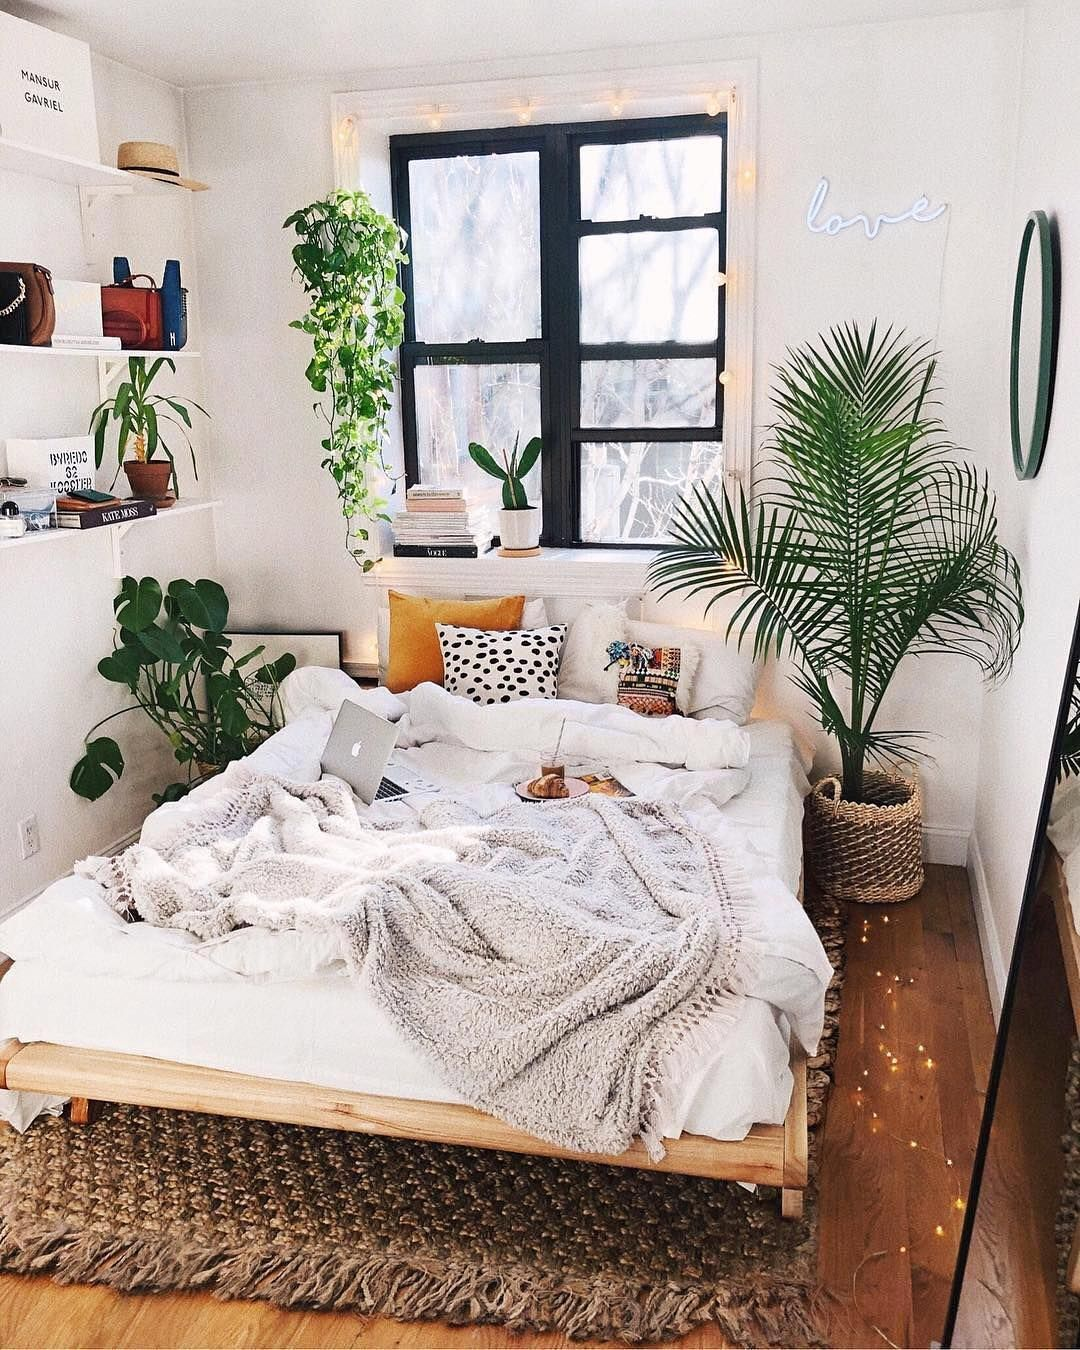 Interior Inspiration On Instagram Would You Love Plants In Your